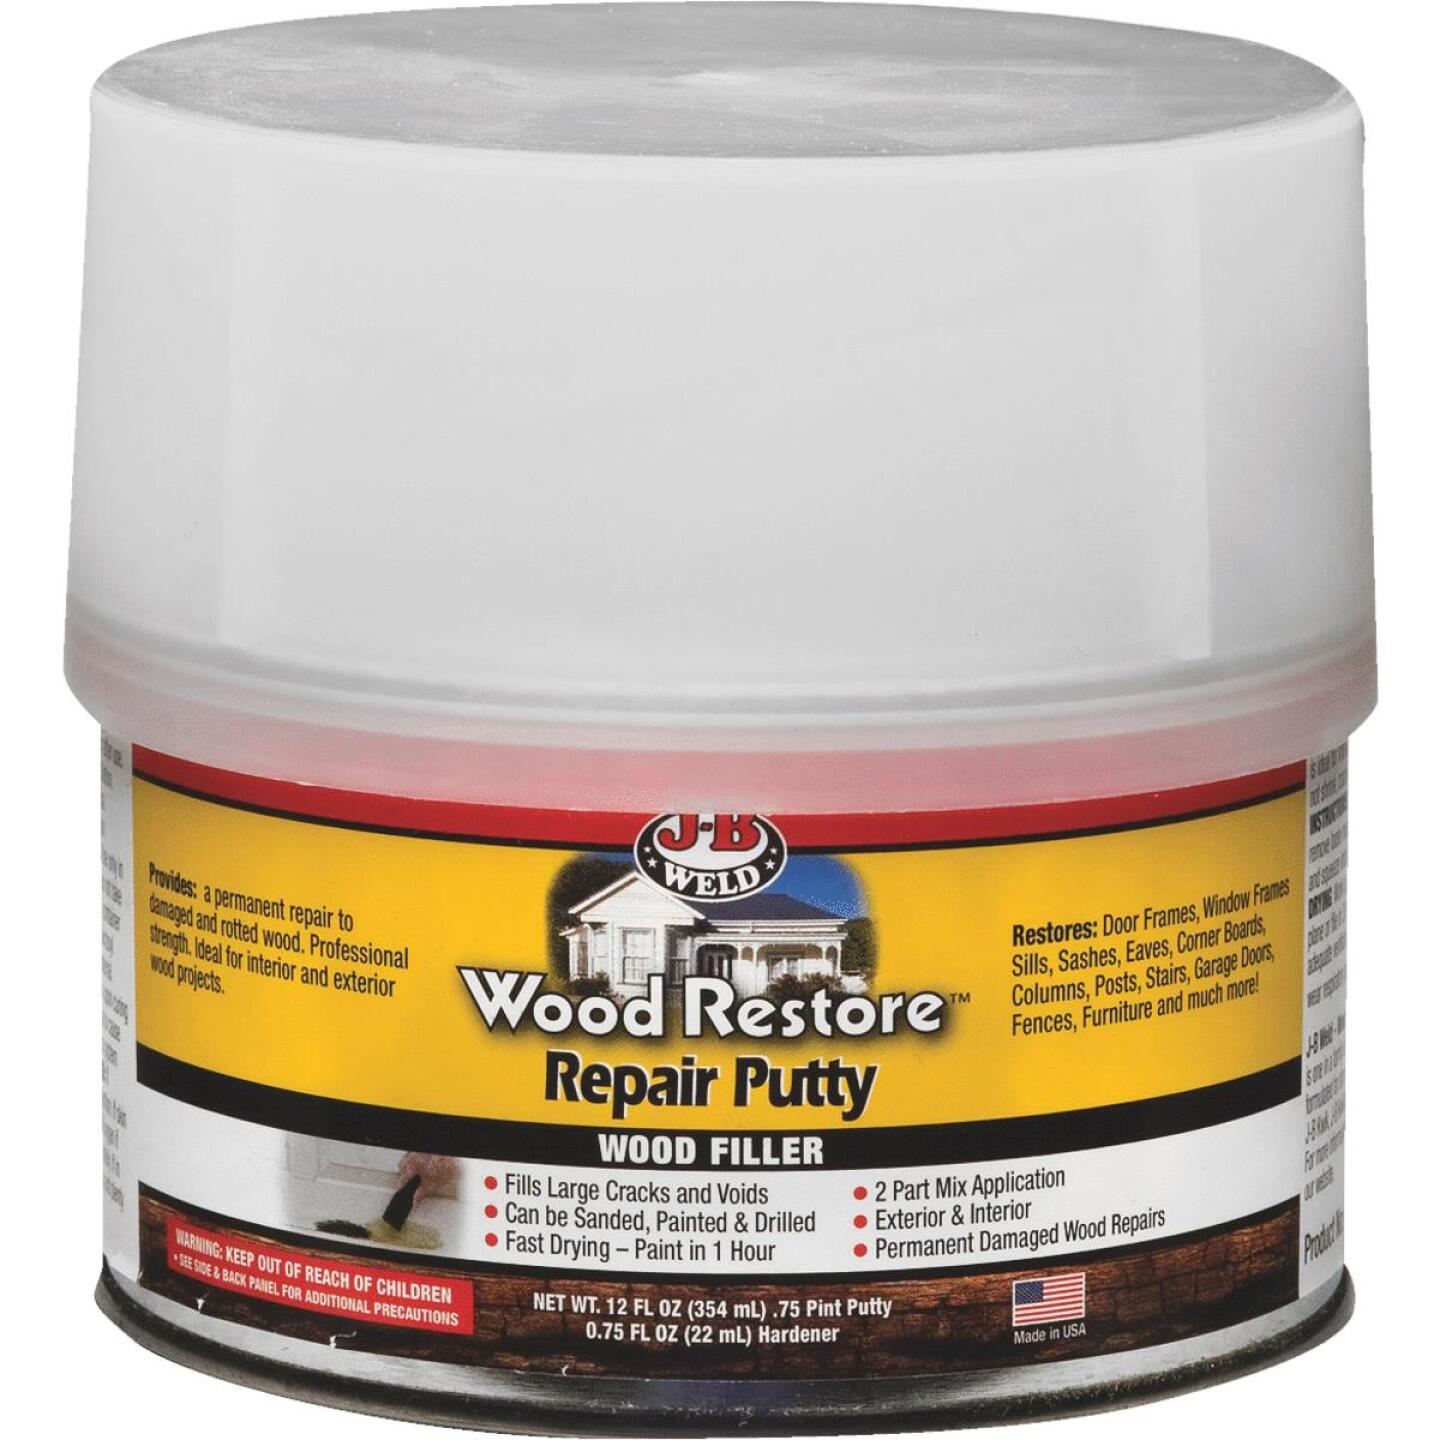 J-B Weld Wood Restore 12 Oz. 2-Part Repair Wood Putty Image 1